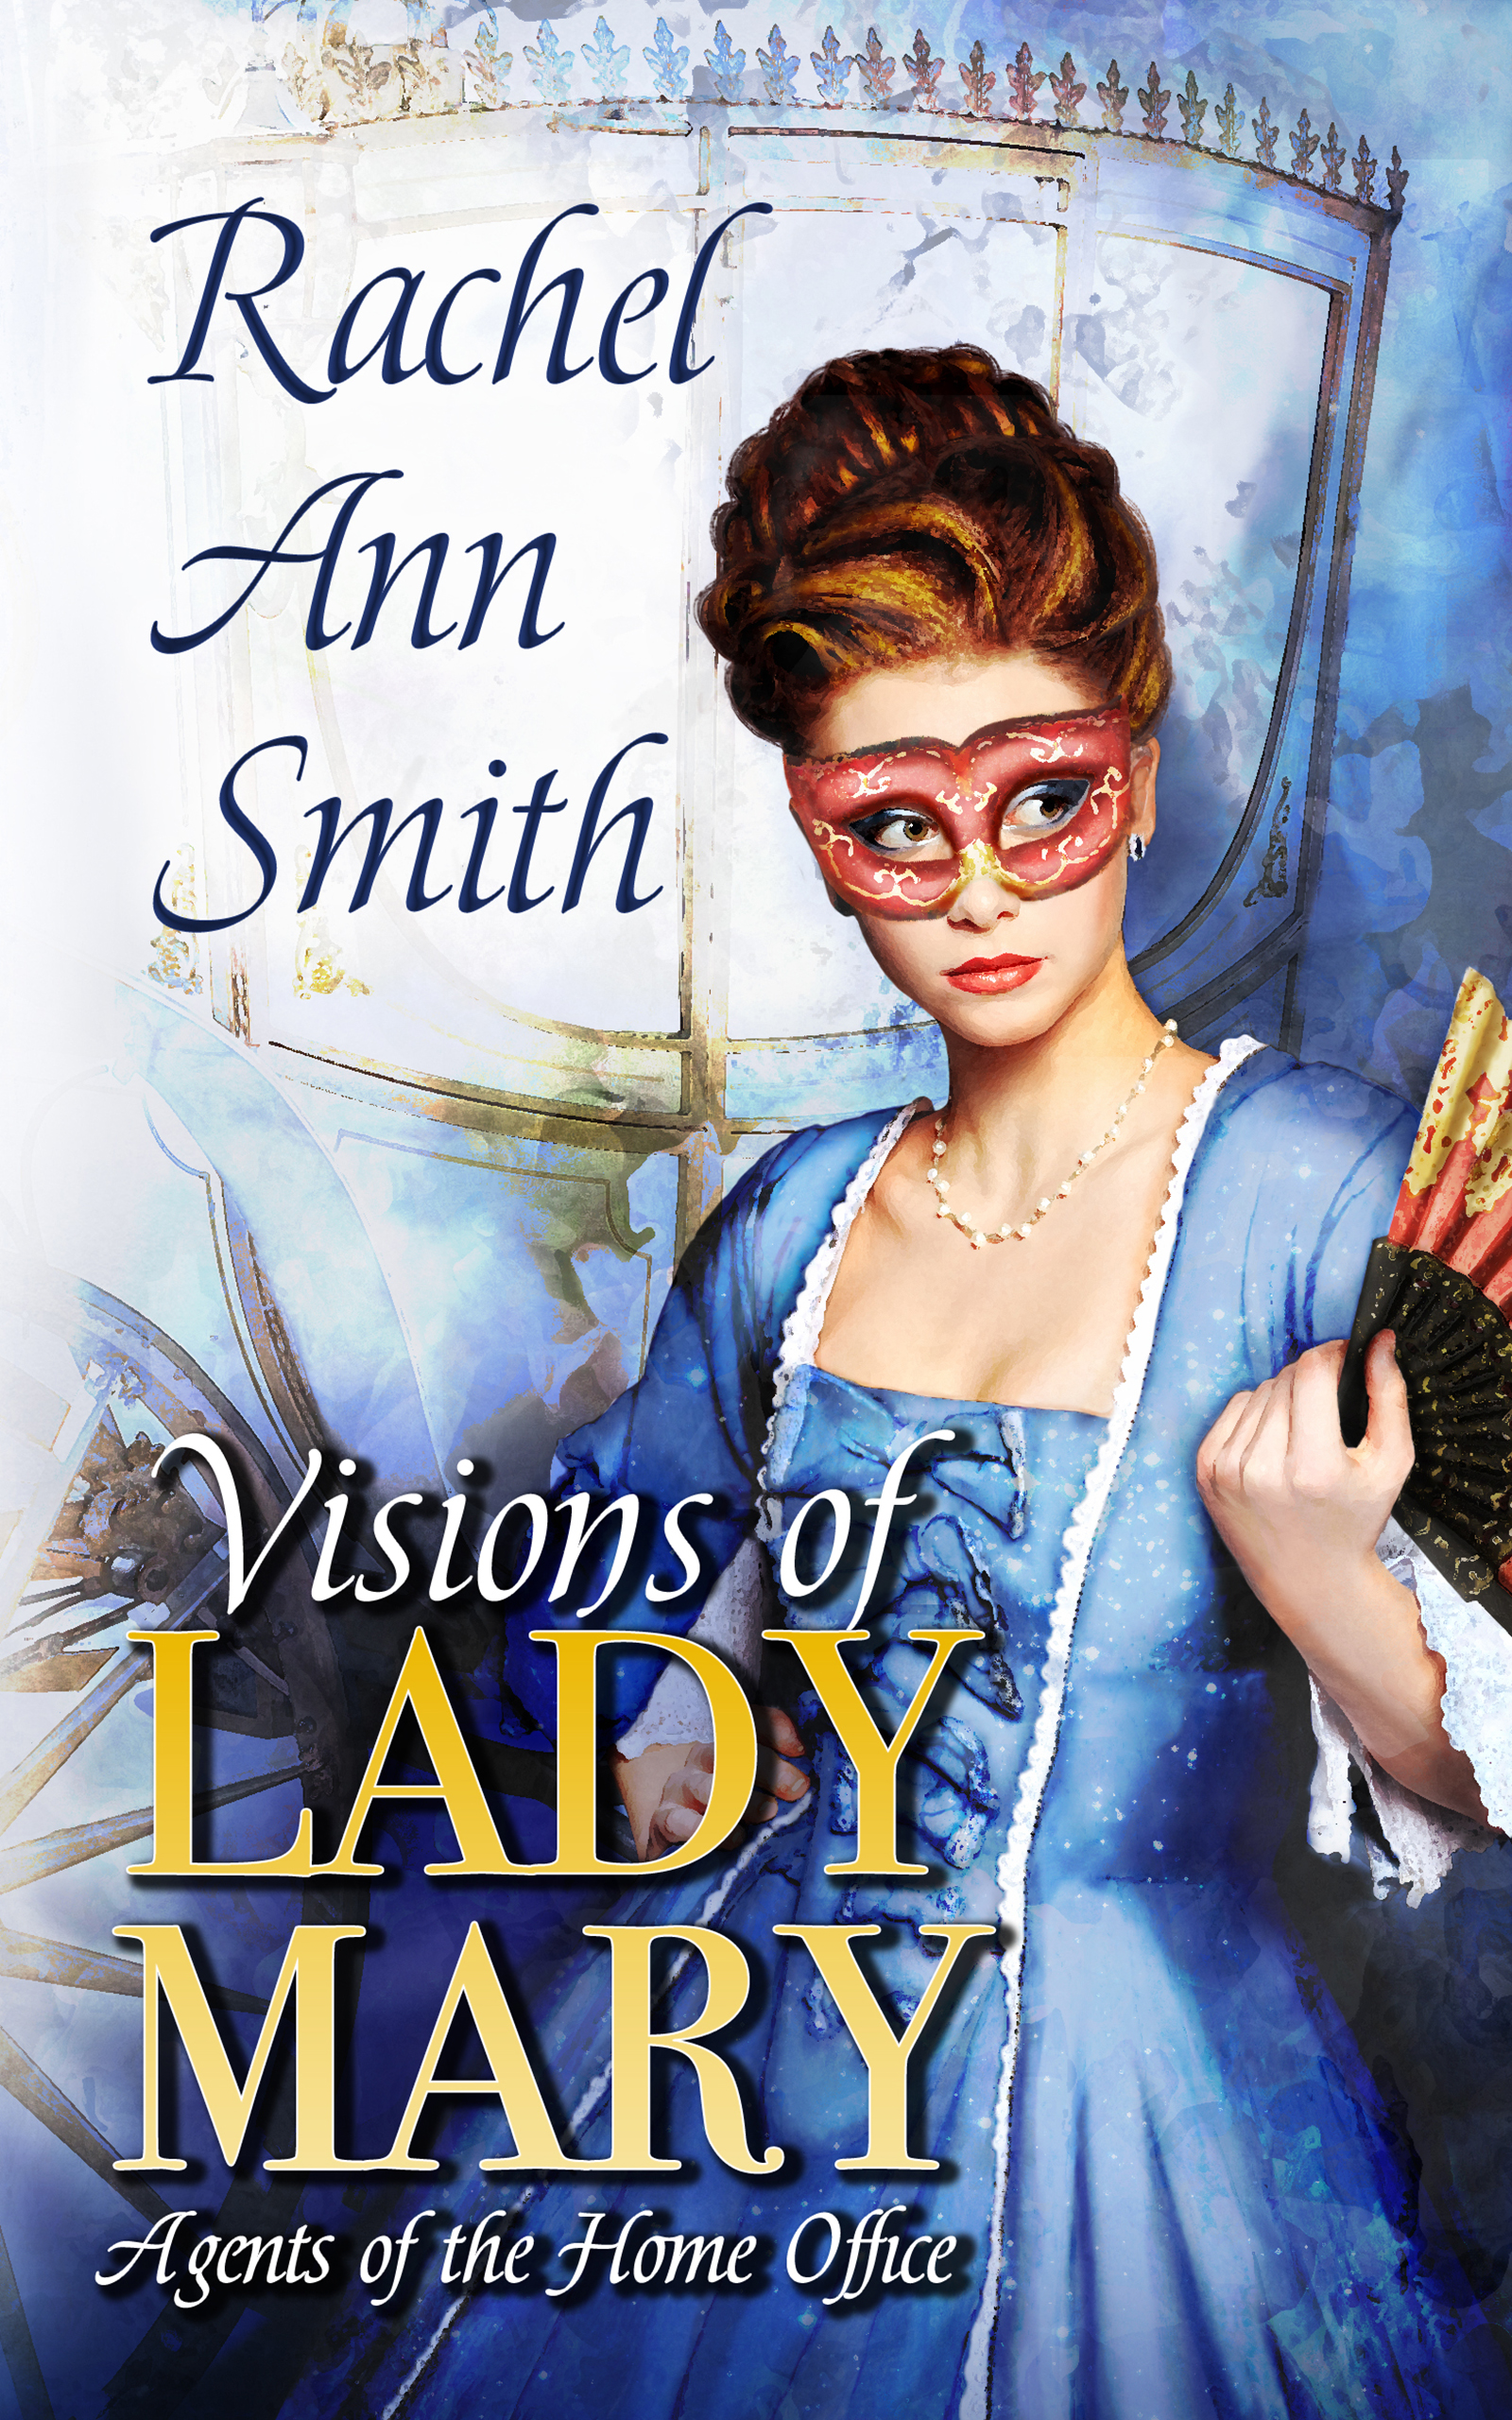 Visions of Lady Mary